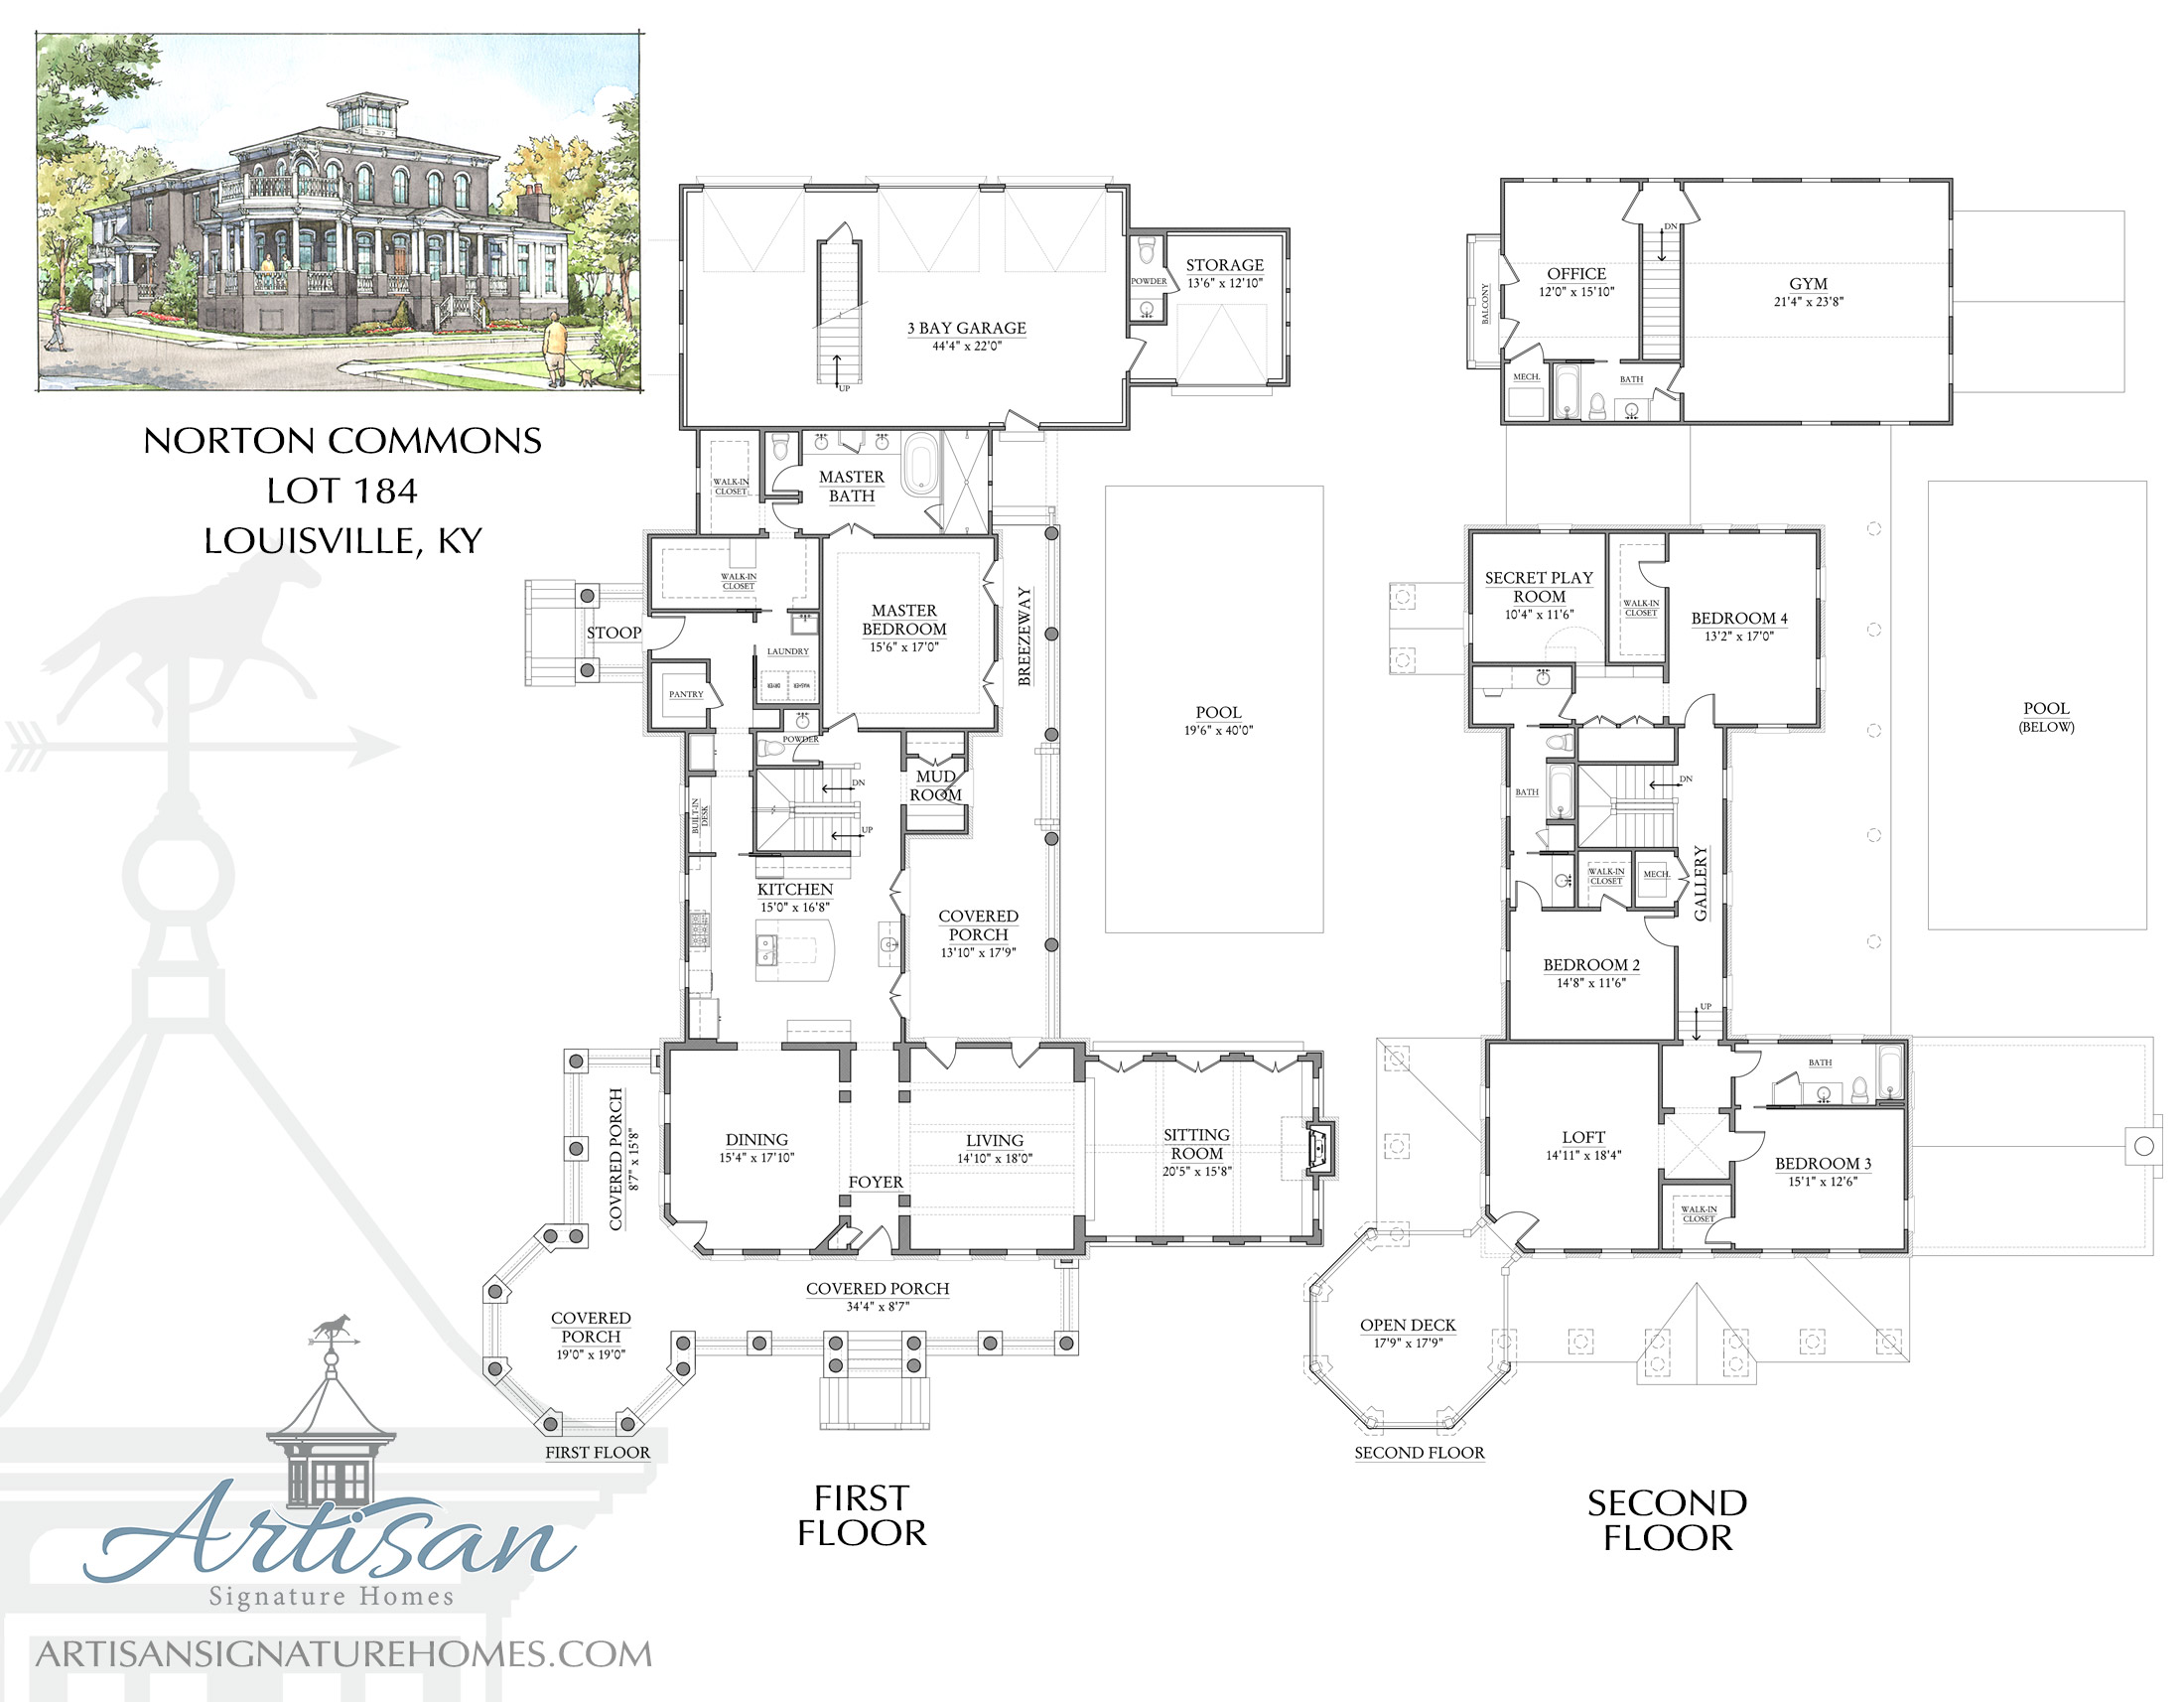 Artisan signature homes custom home builder louisville for Home builders floor plans